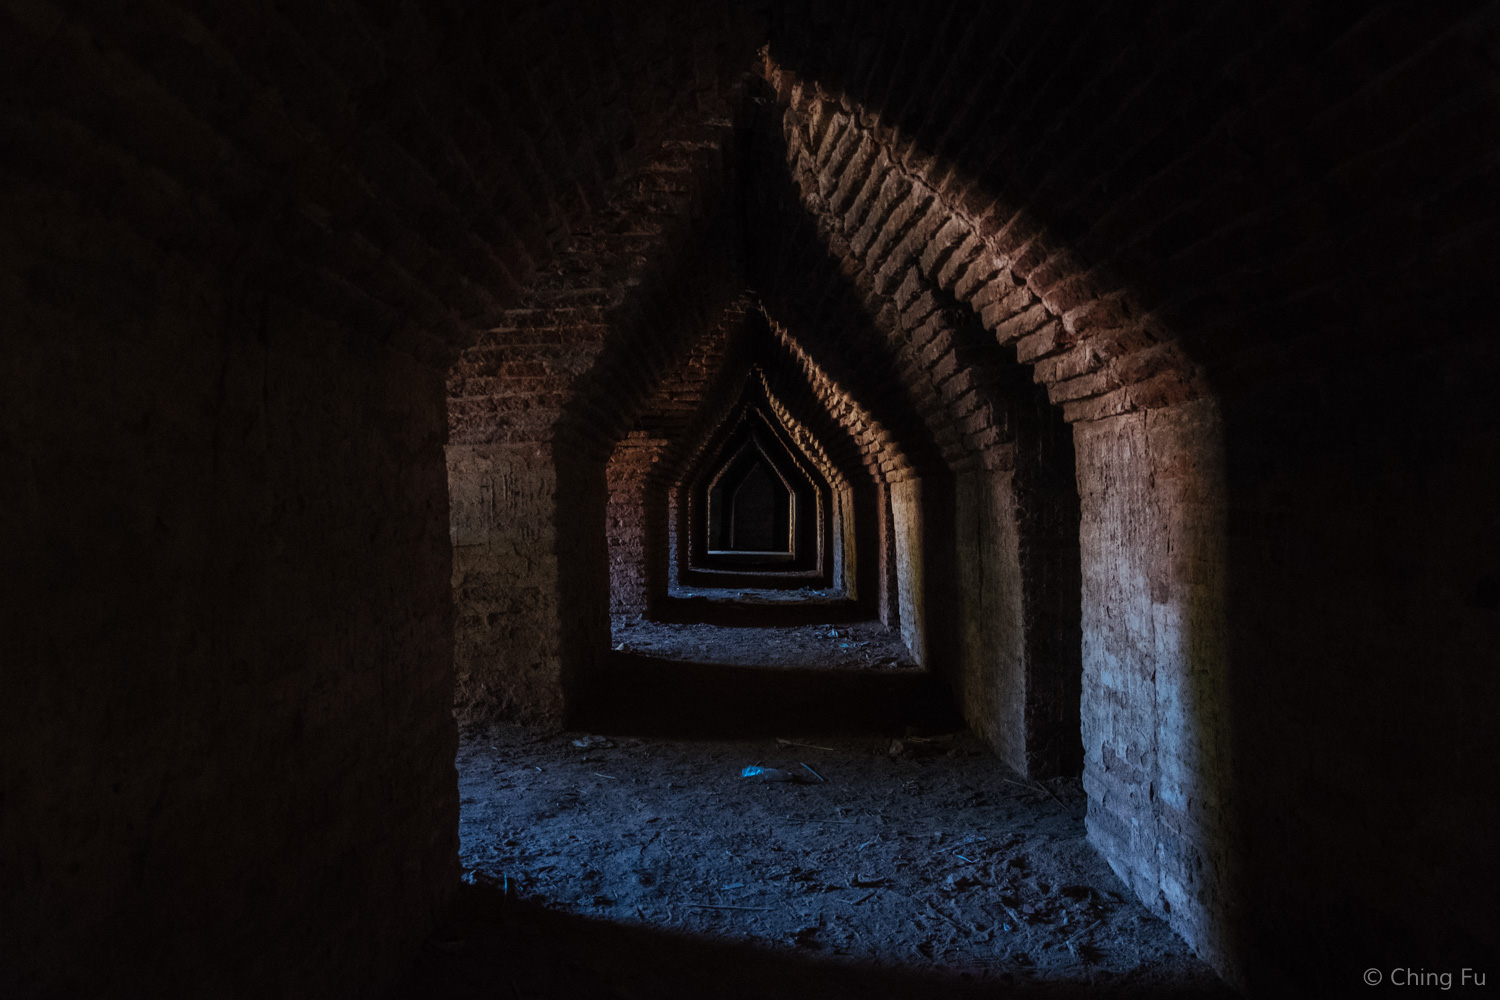 There were rows of corridors under Maha Aung Mye Bon Zan Monastery. Stray dogs expertly weaved their way through the dark openings.